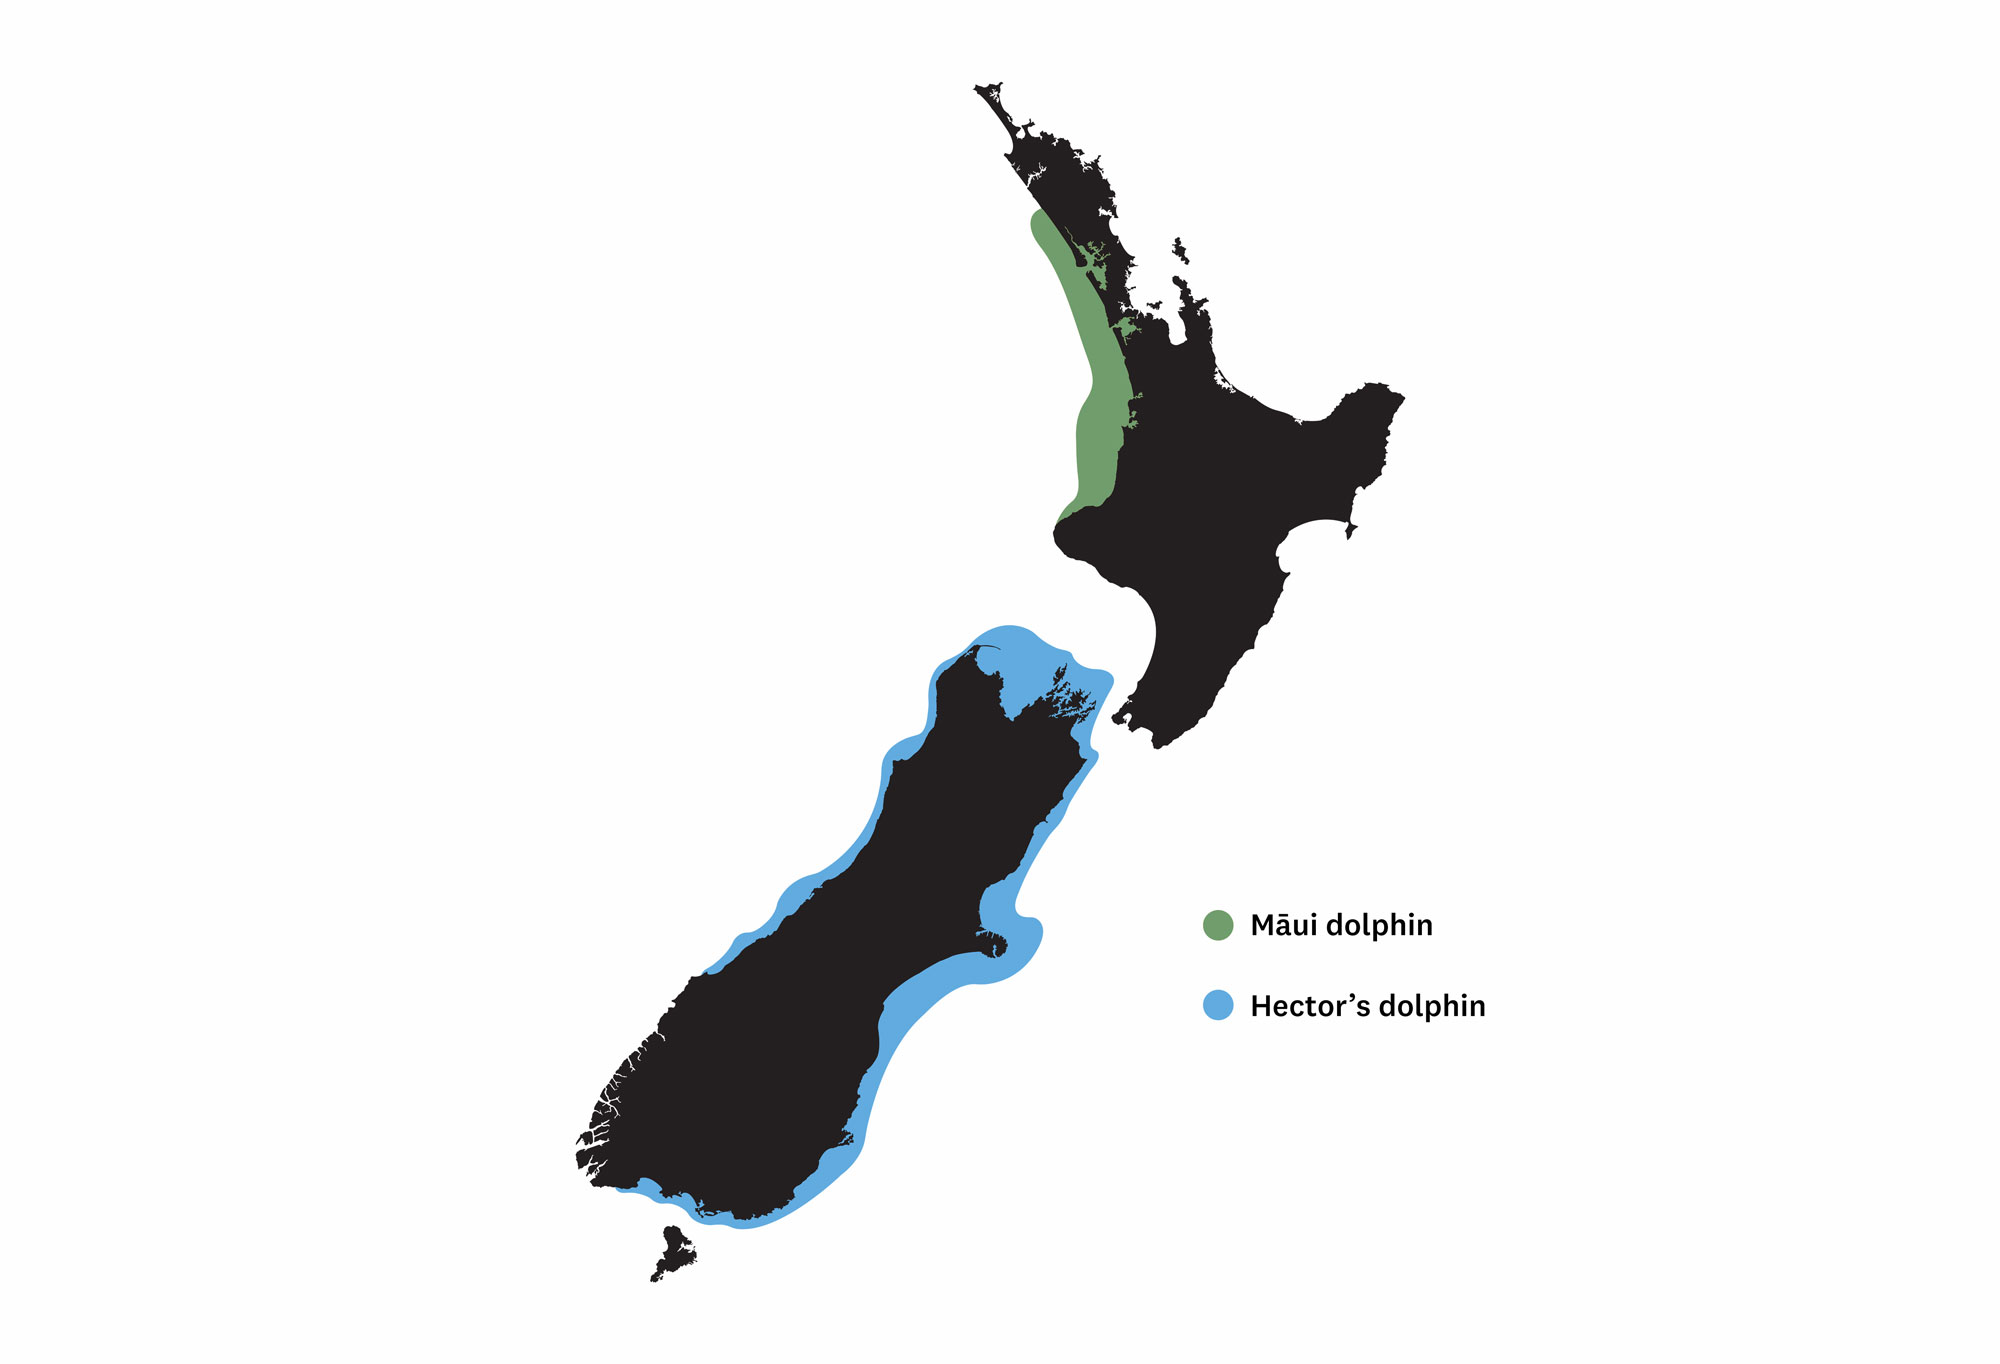 a drawing of New Zealand with green and blue outlines on each island